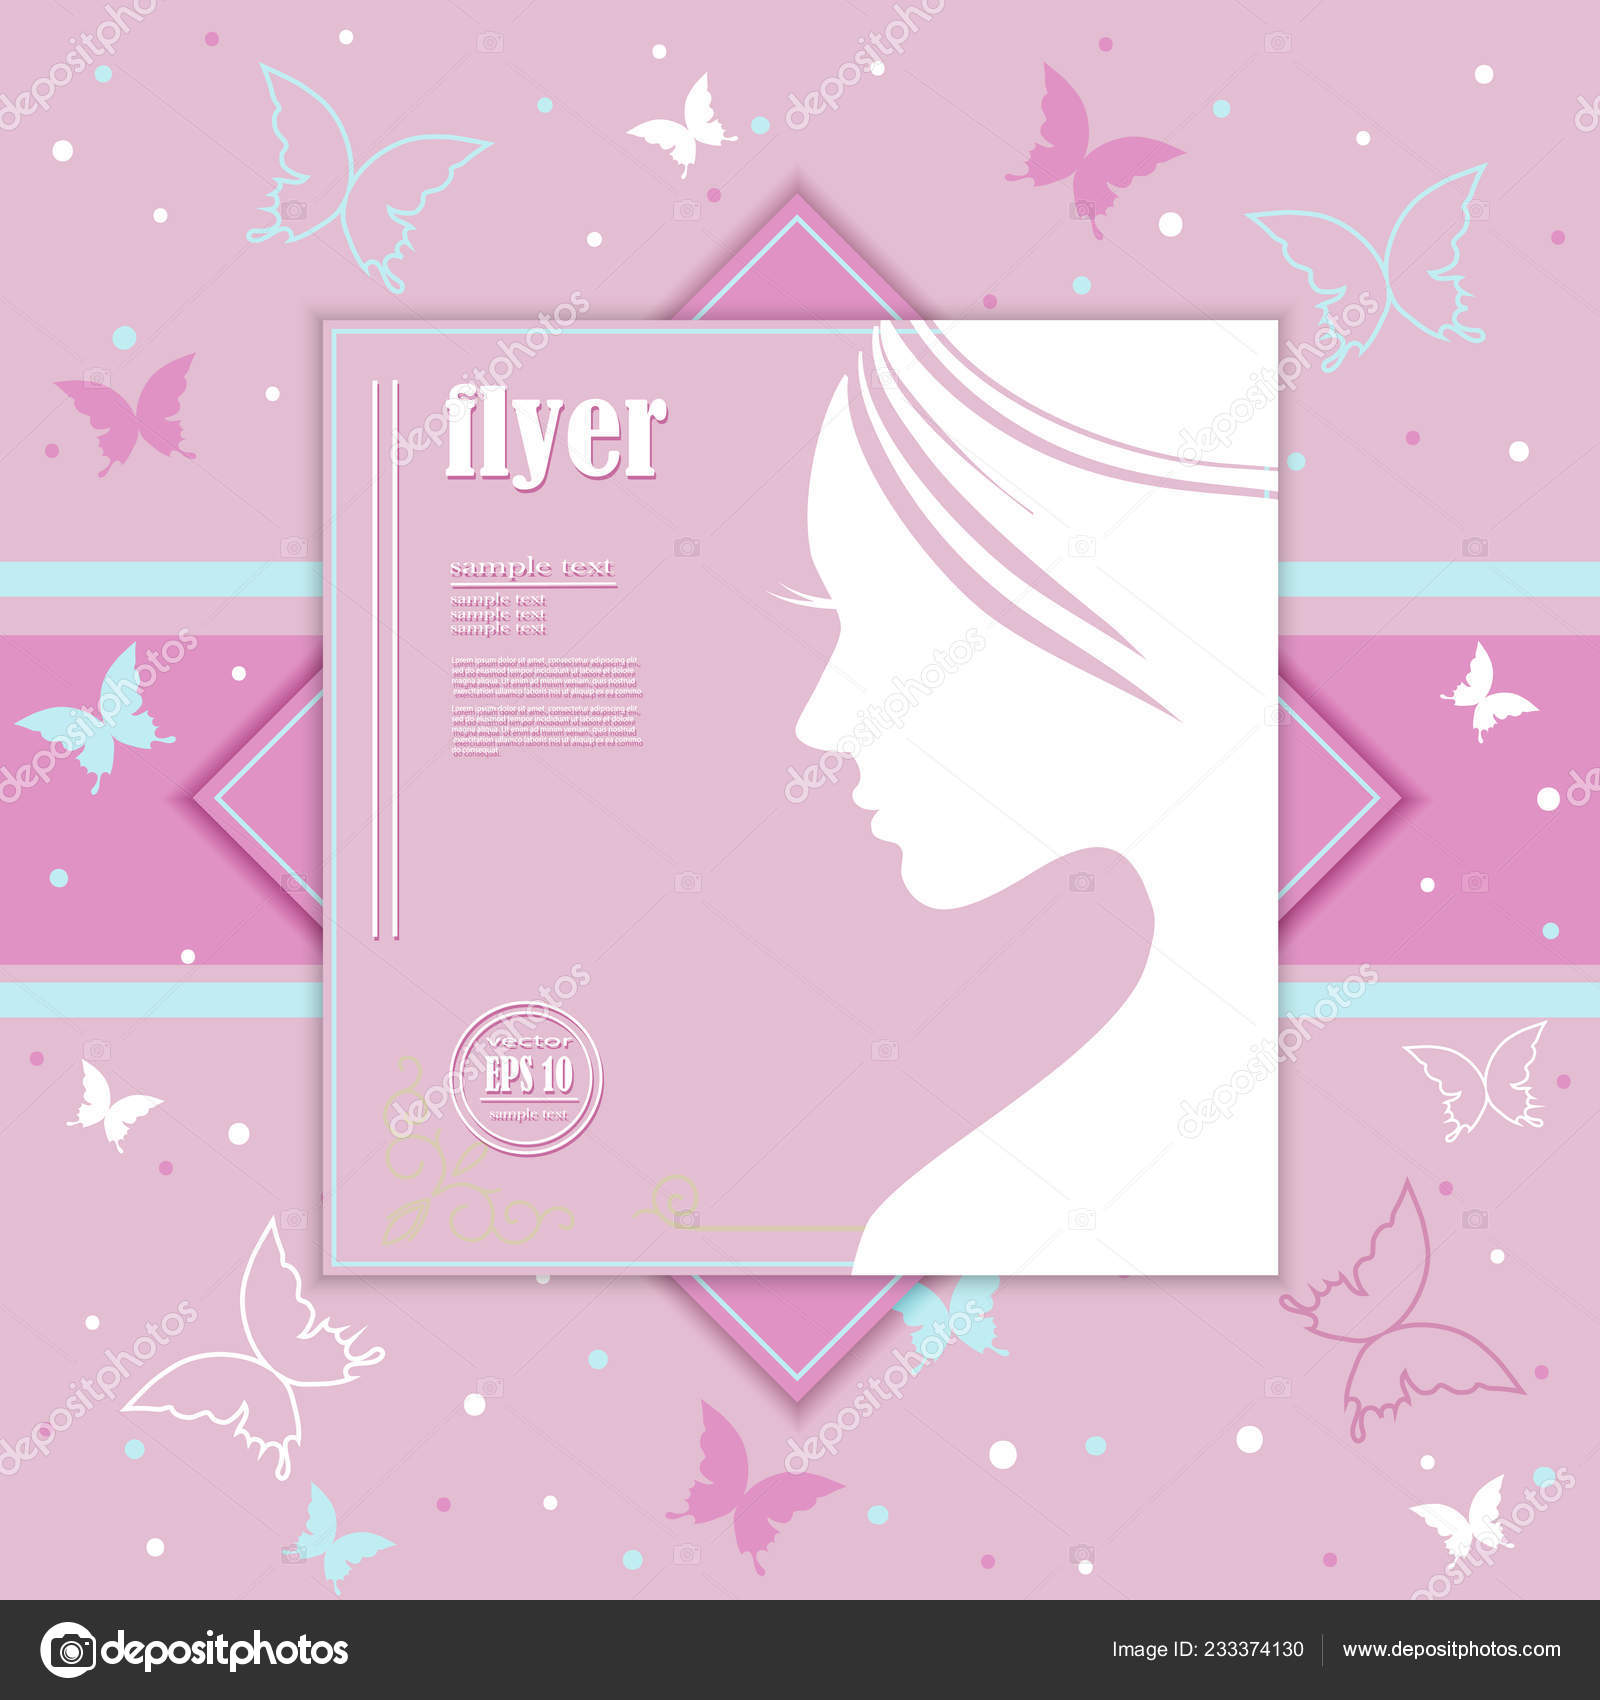 Beautiful Girl Silhouette Colorful Hair Vector Background Abstract Design Concept Stock Vector C Nemetse 233374130